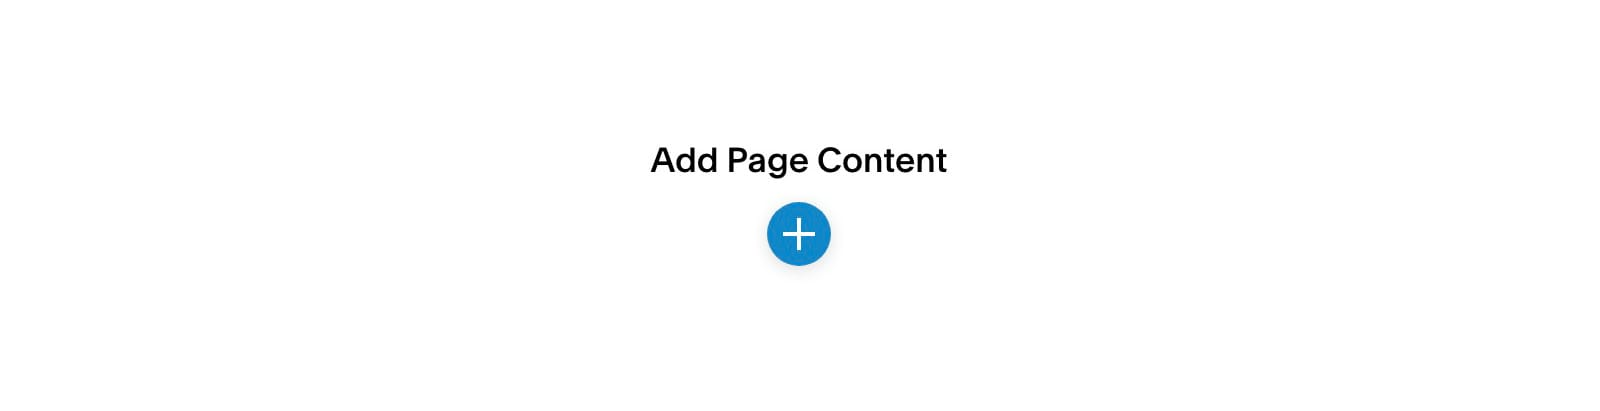 Add Page Content